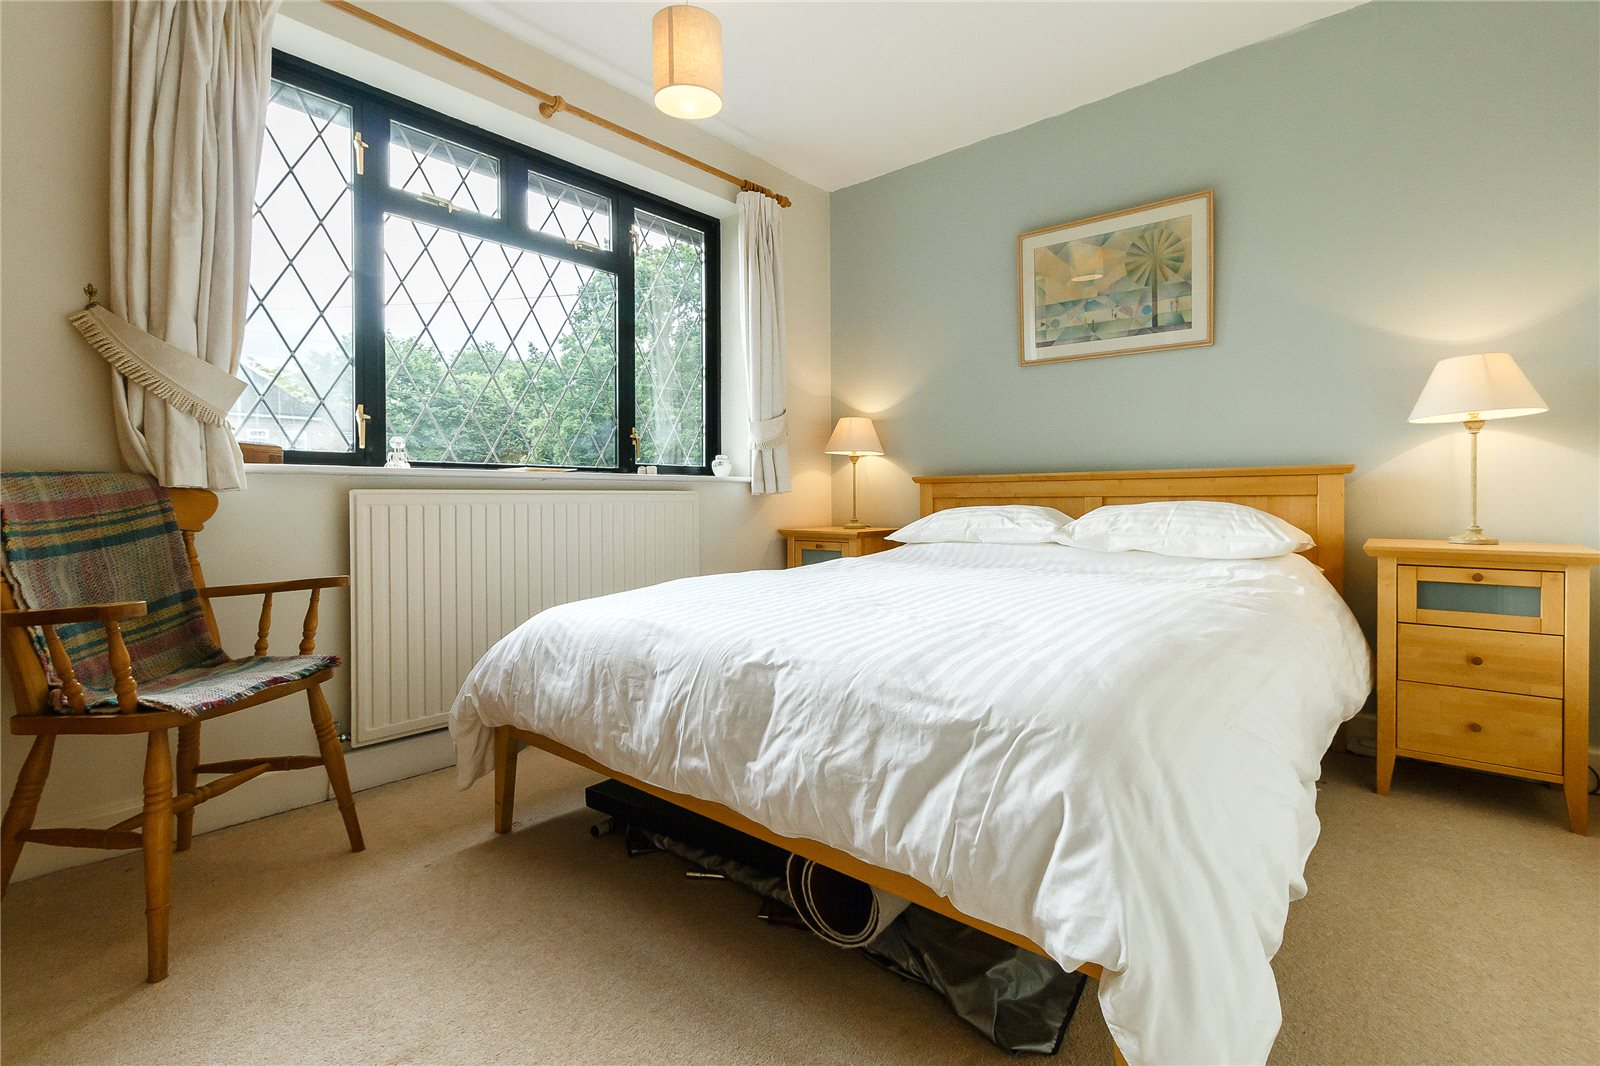 Additional photo for property listing at Daleside, Gerrards Cross, Buckinghamshire, SL9 Gerrards Cross, Inghilterra